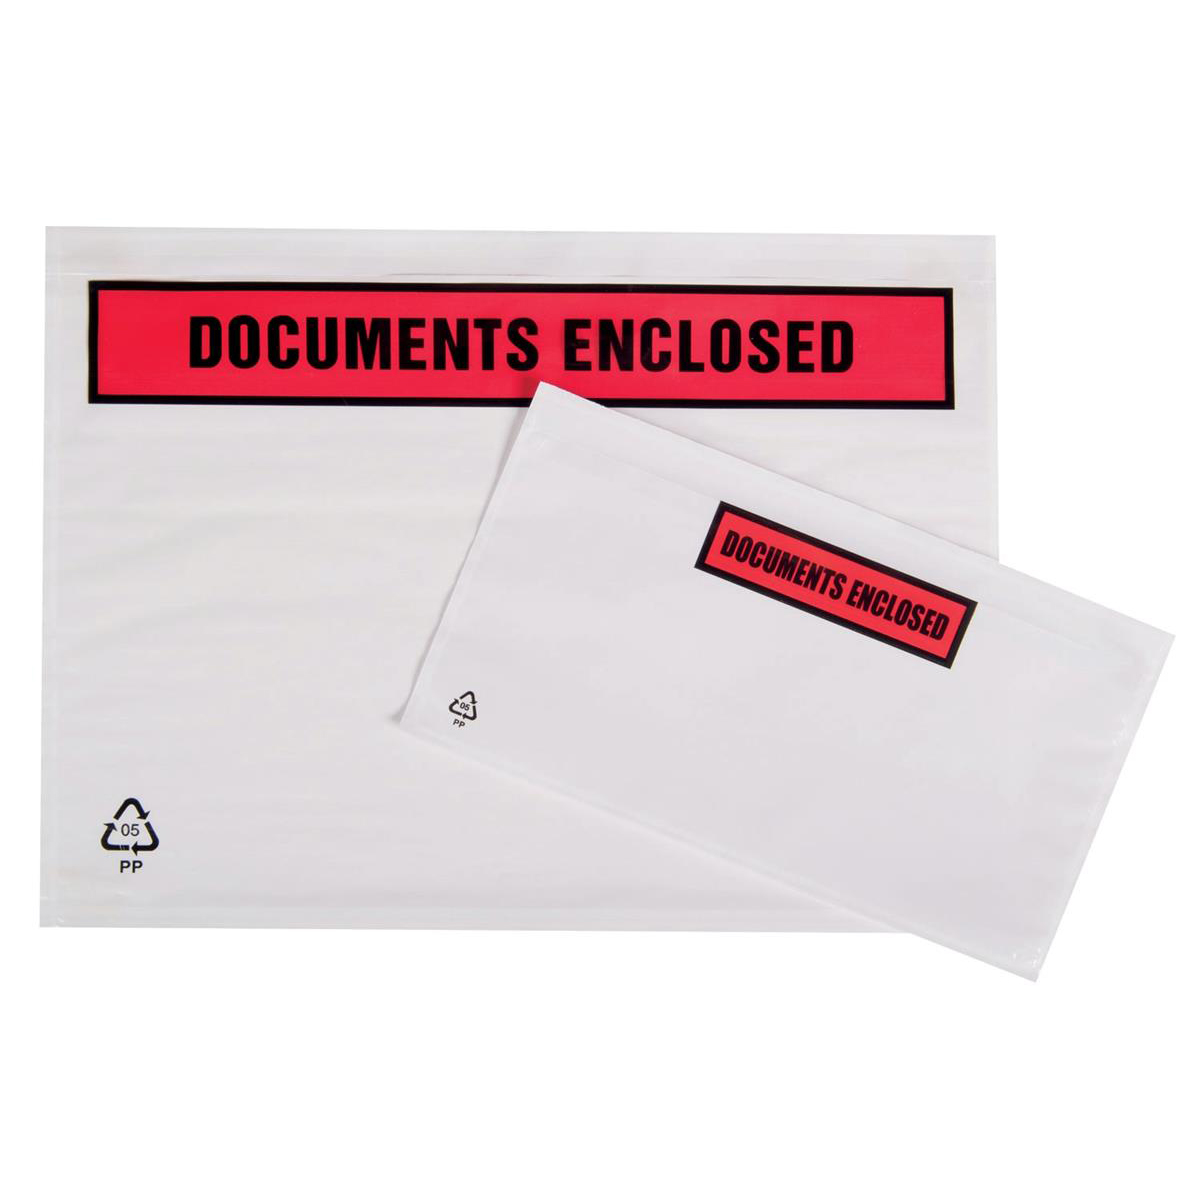 Document Enclosed Wallets Packing List Document Wallet Polythene Documents Enclosed Printed Text A7 113x100mm White Pack 1000